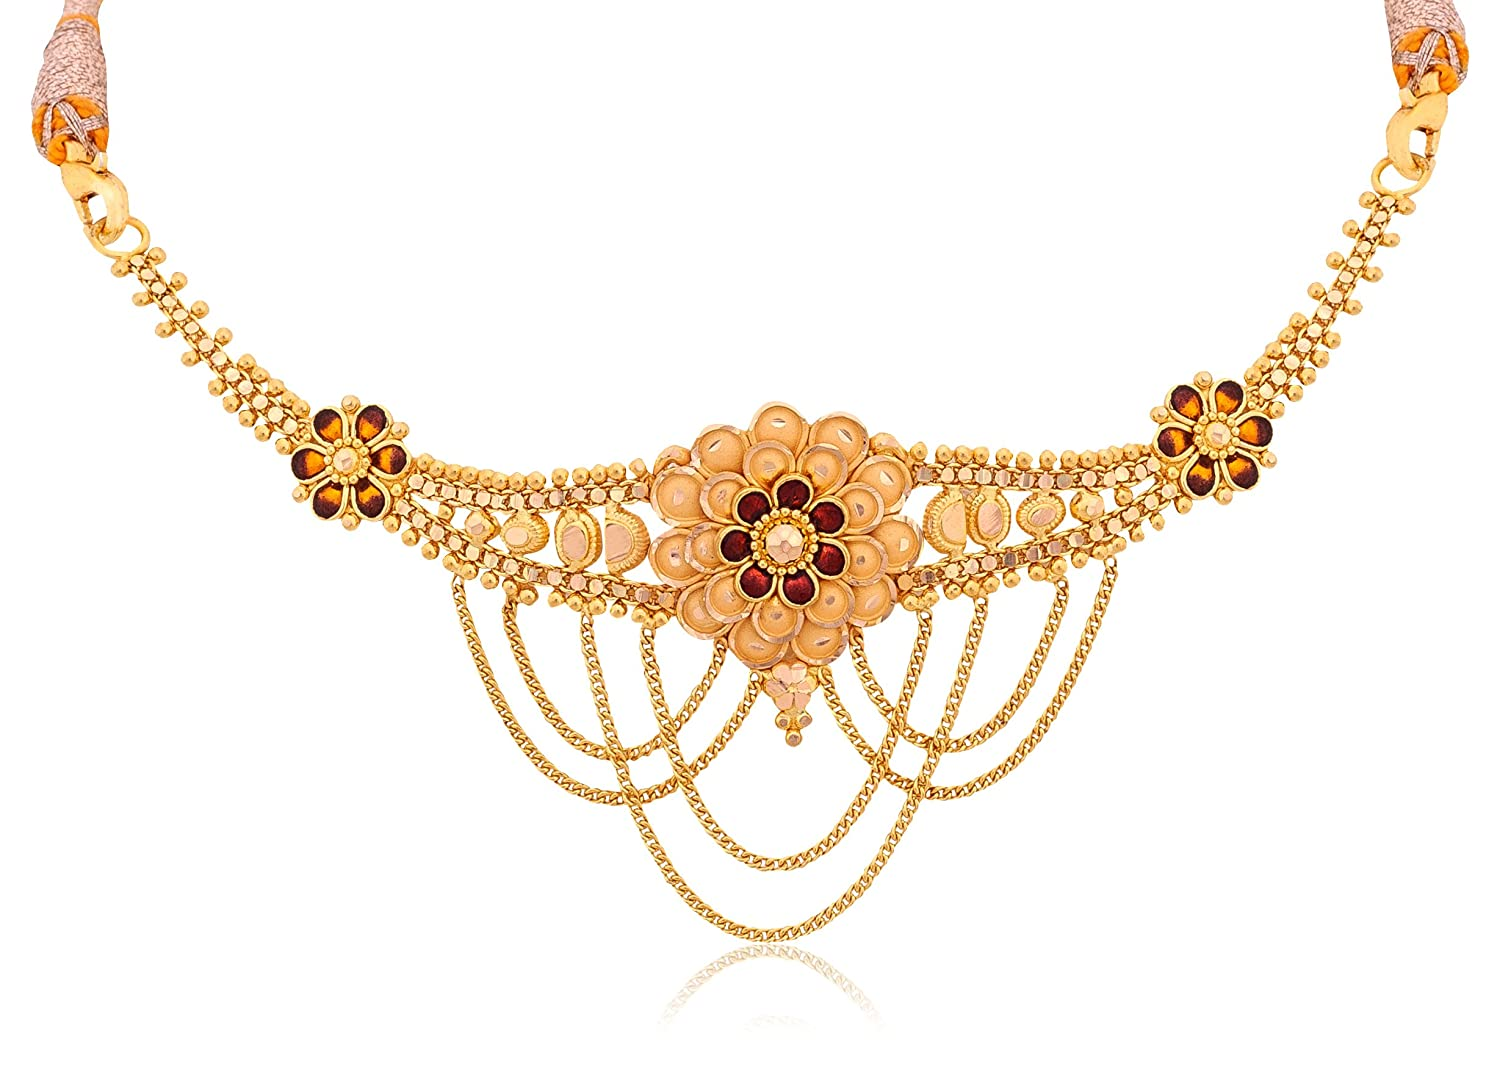 Gold necklace designs with price in rupees jewelry gallery - Buy Senco Gold 22k Yellow Gold Choker Necklace Online At Low Prices In India Amazon Jewellery Store Amazon In